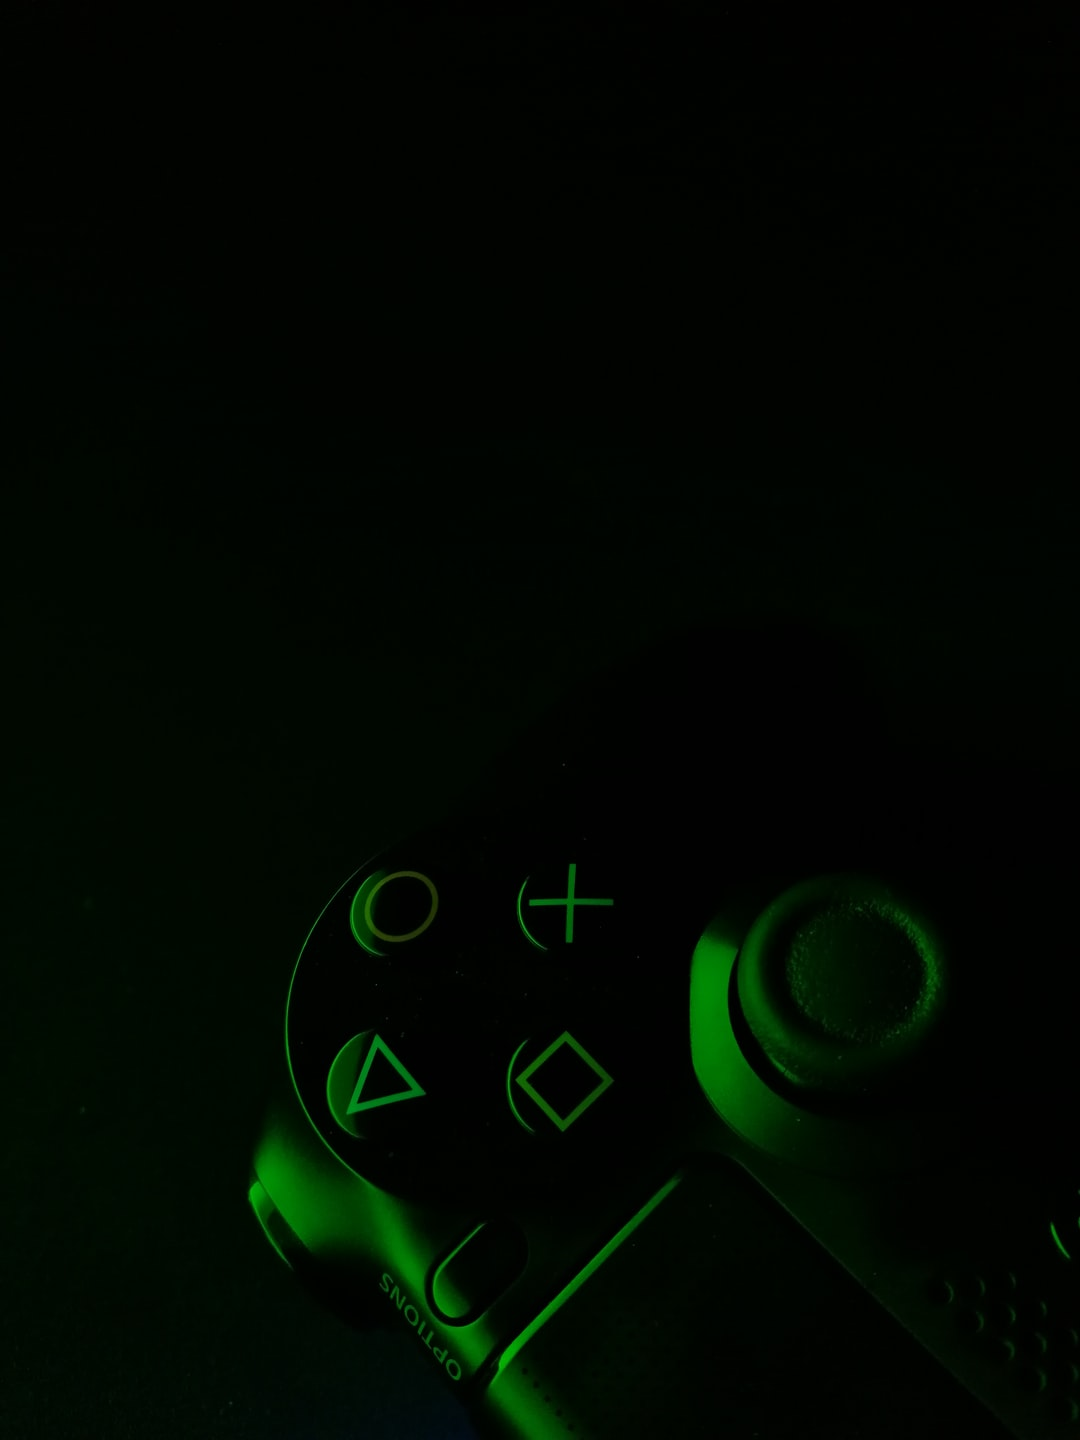 Ps4 Controller Pictures | Download Free Images on Unsplash